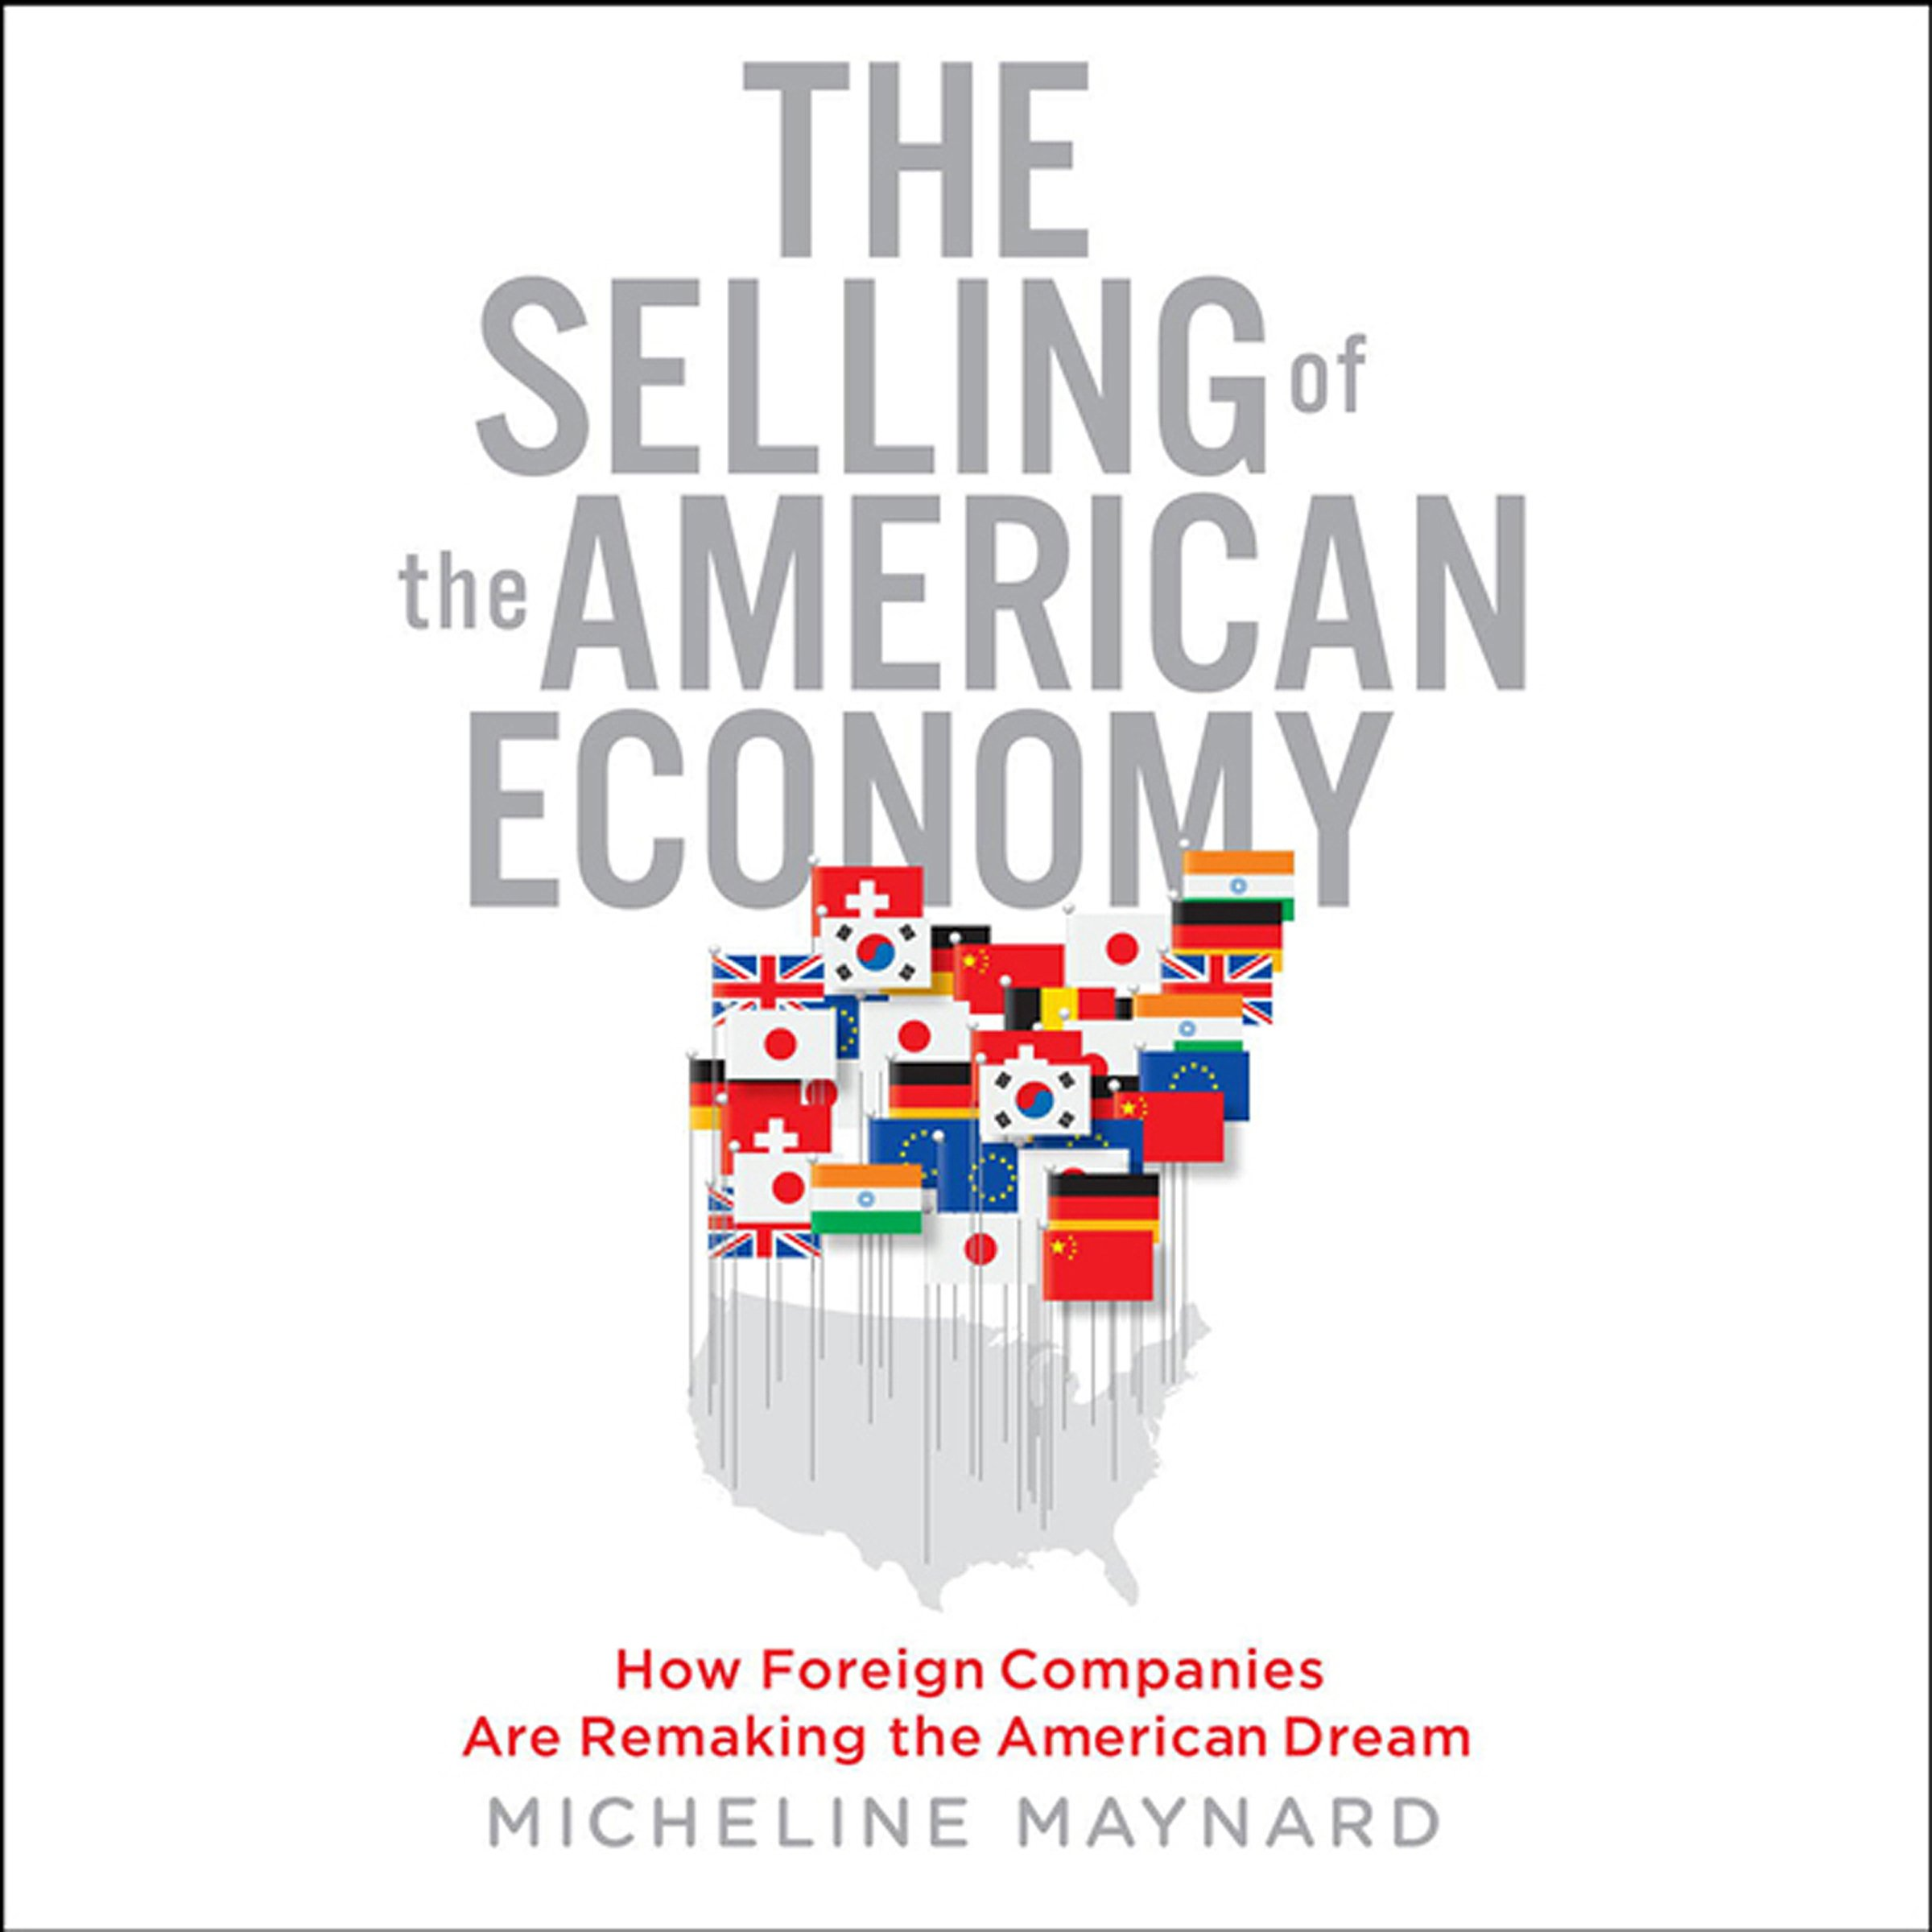 The Selling of the American Economy: How Foreign Companies Are Remaking the American Dream